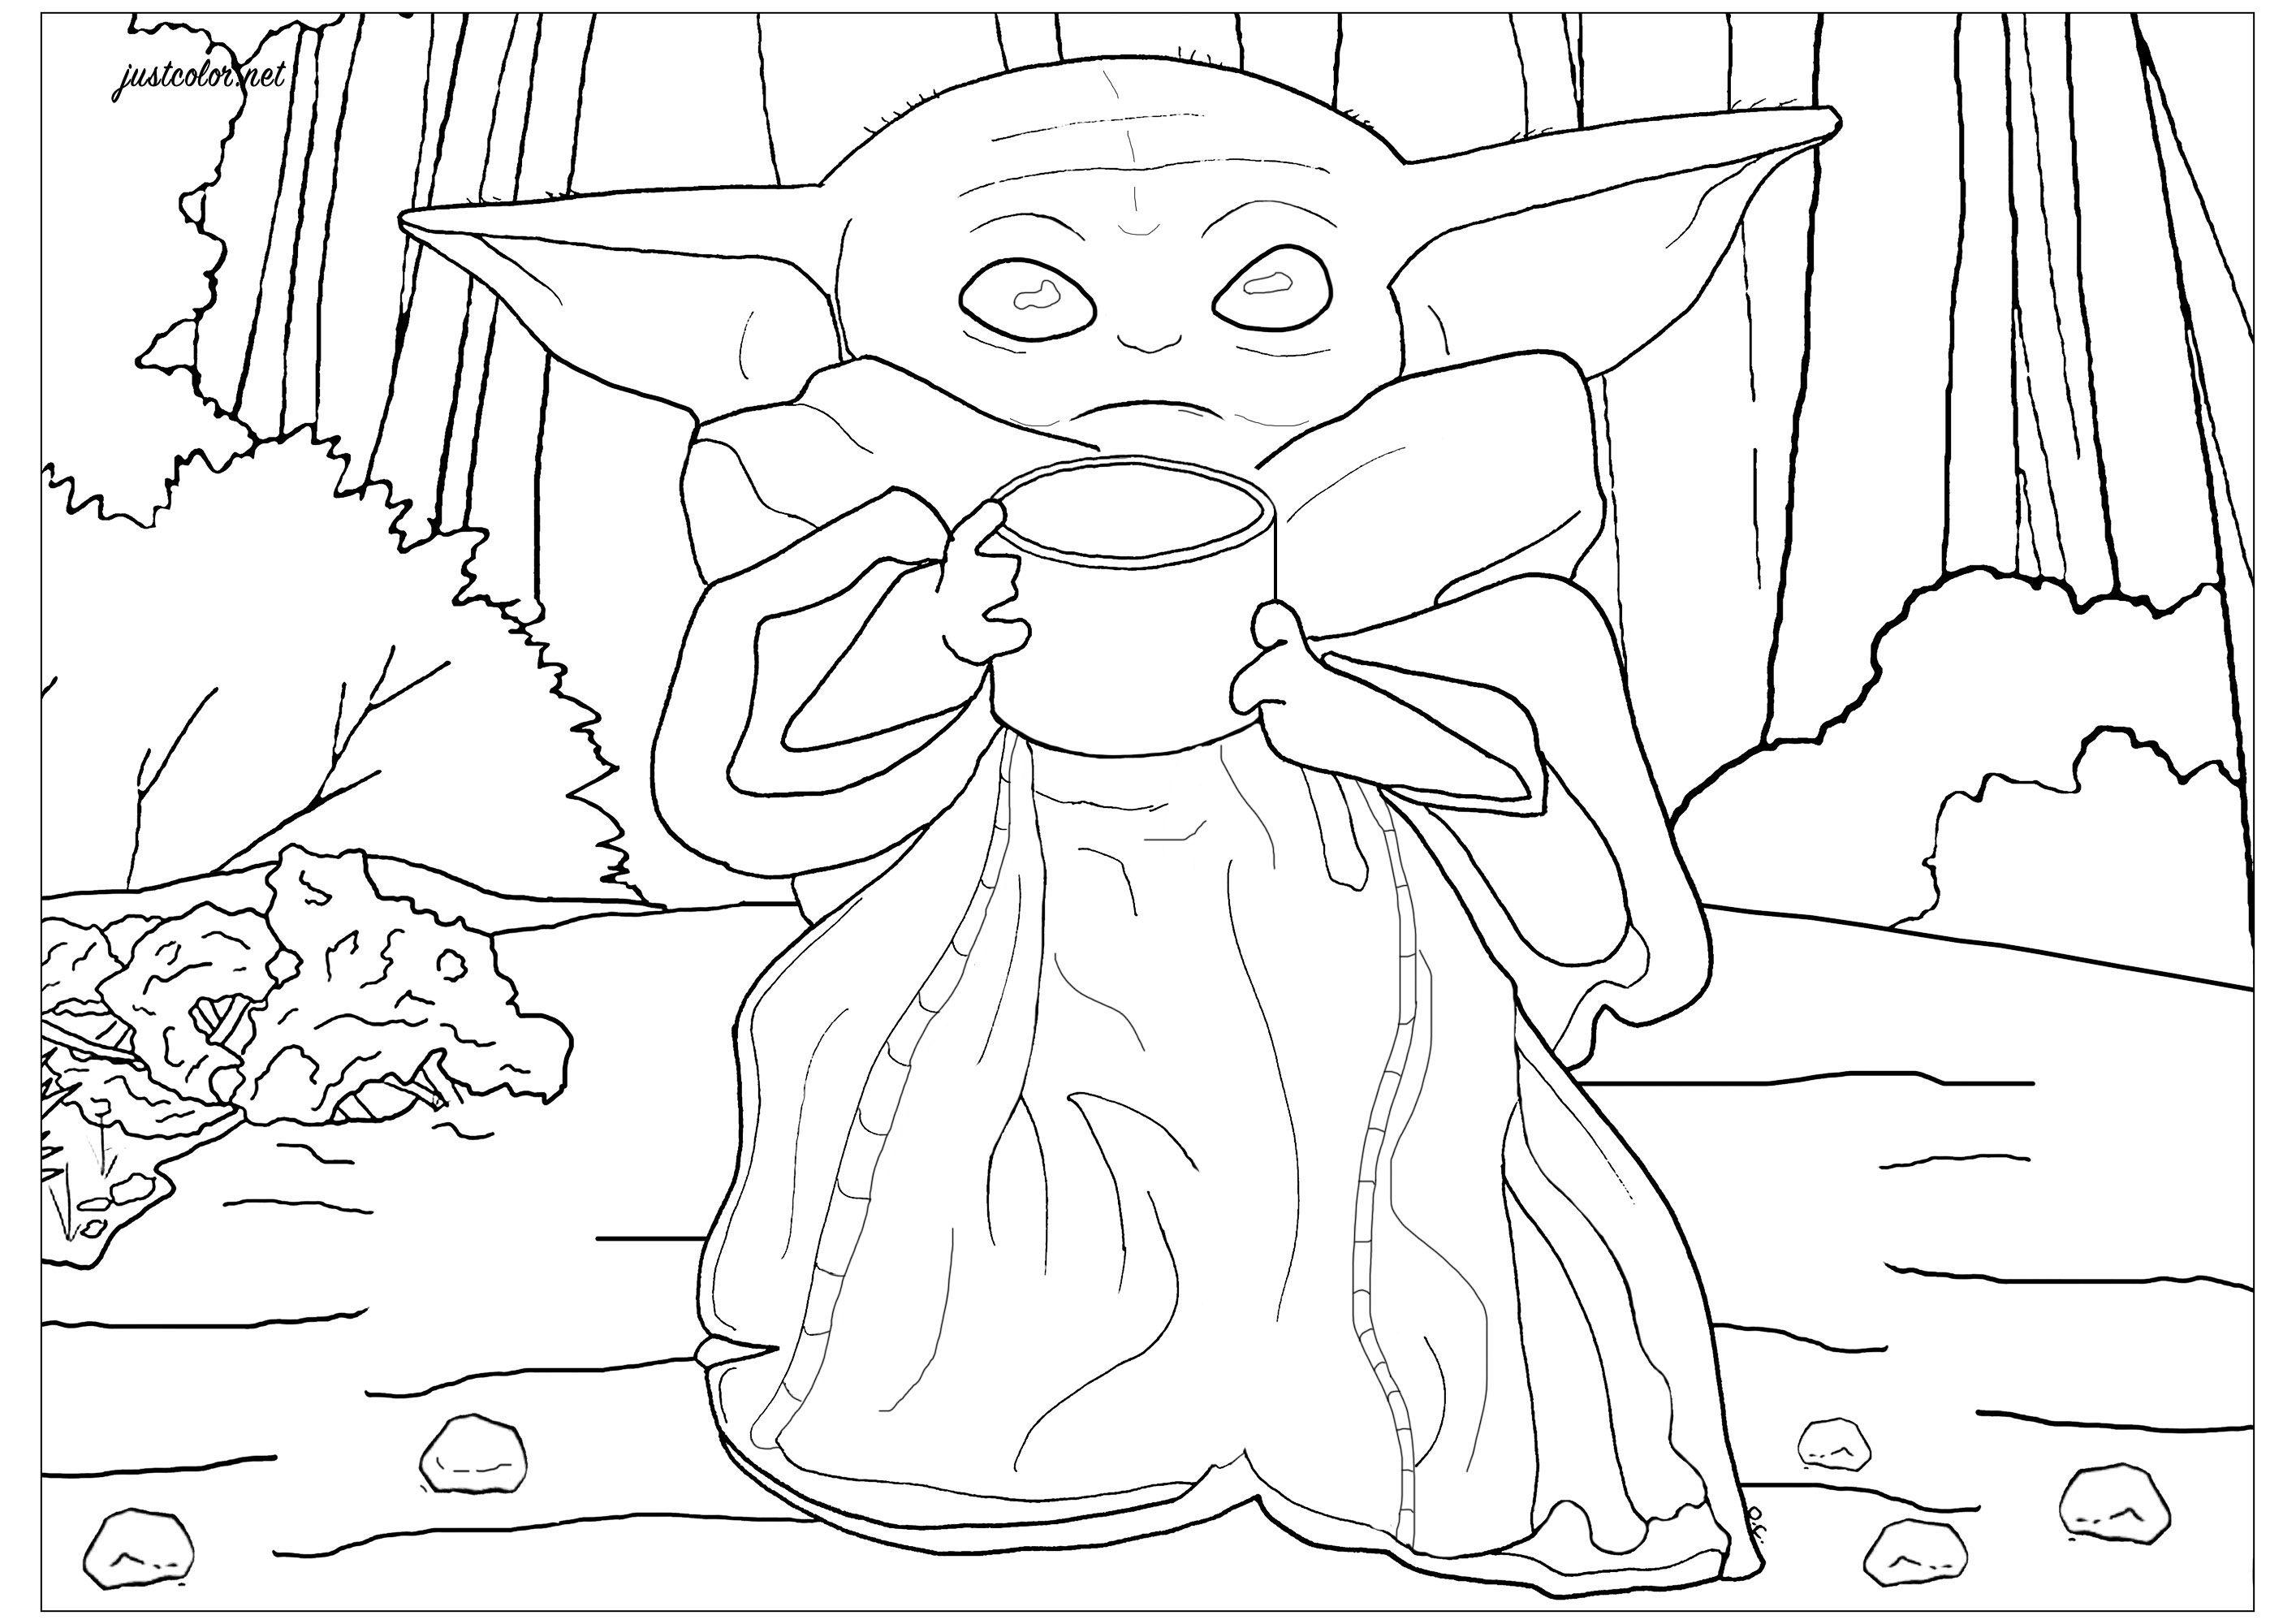 Baby Yoda The Child - Movies Adult Coloring Pages